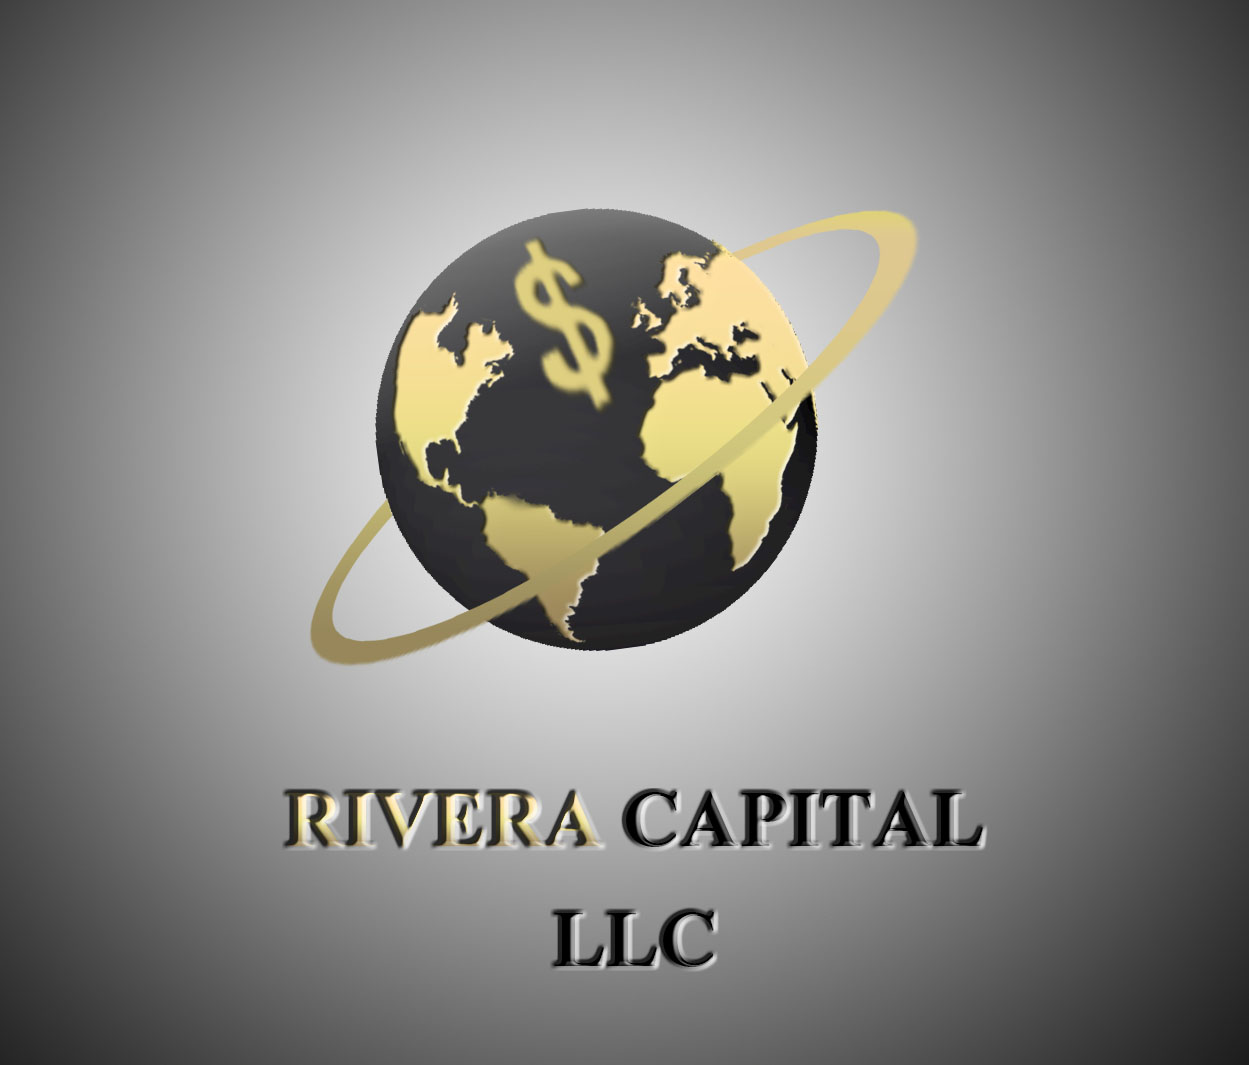 Logo Design by Mythos Designs - Entry No. 95 in the Logo Design Contest Logo Design Needed for Exciting New Company Rivera Capital LLC LLC.